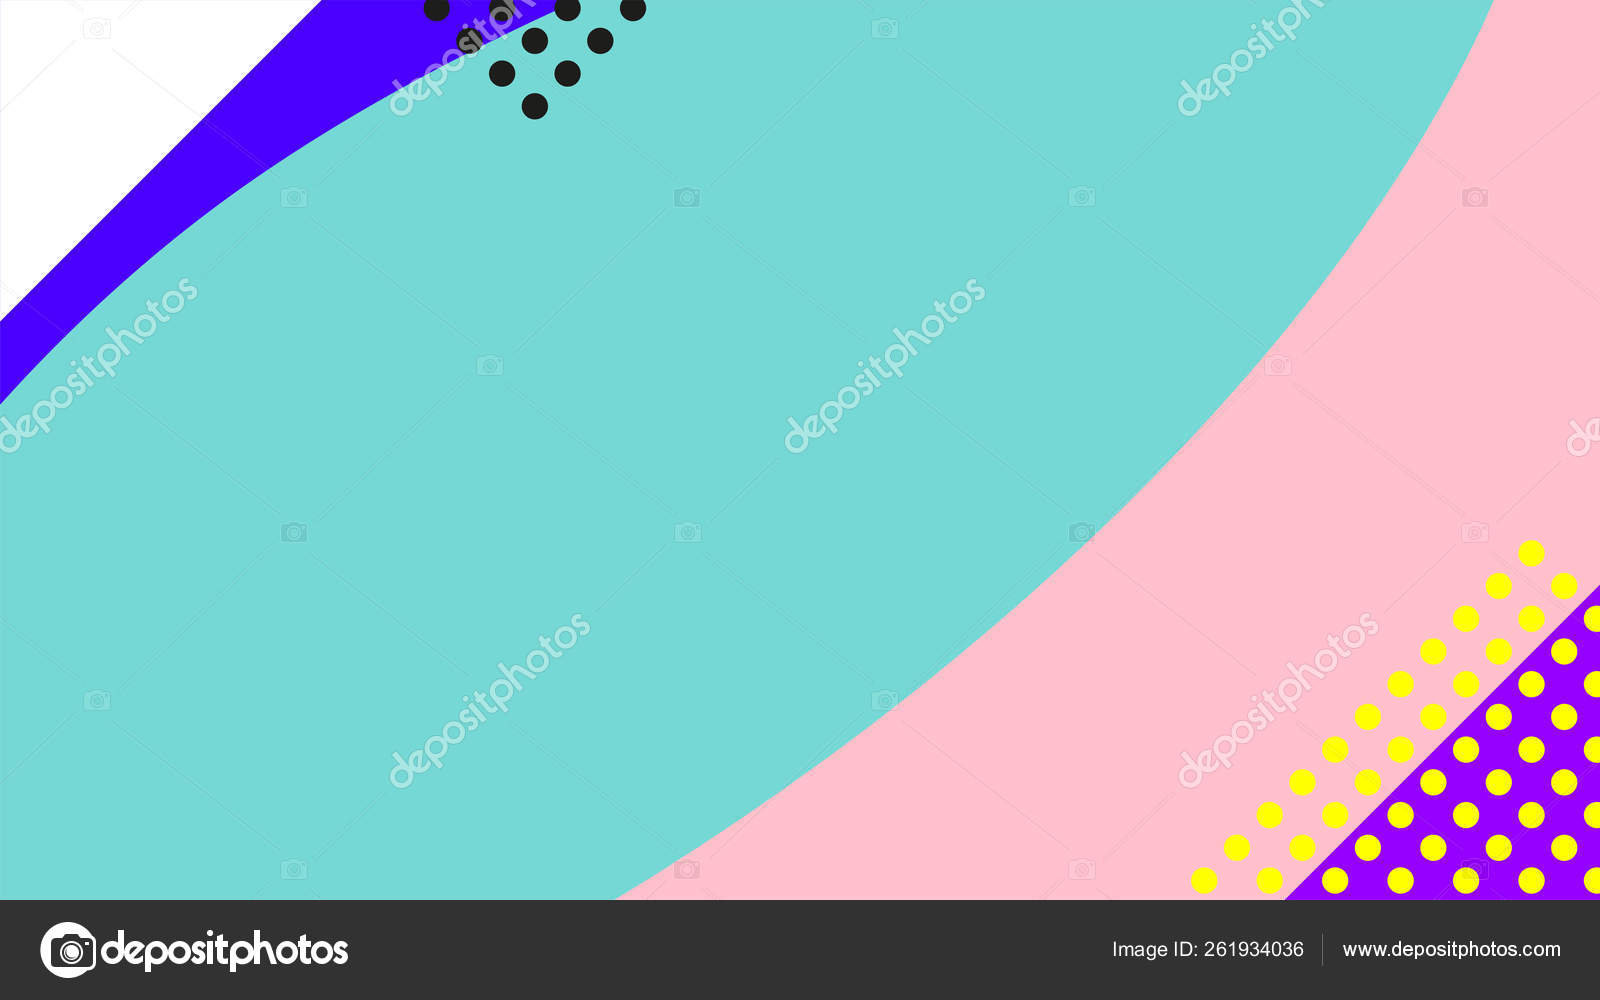 Vaporwave Retrowave Abstract Background Gradient Colorful Shaps Memphis Geometric Elements Stock Vector C V Scaperrotta 261934036